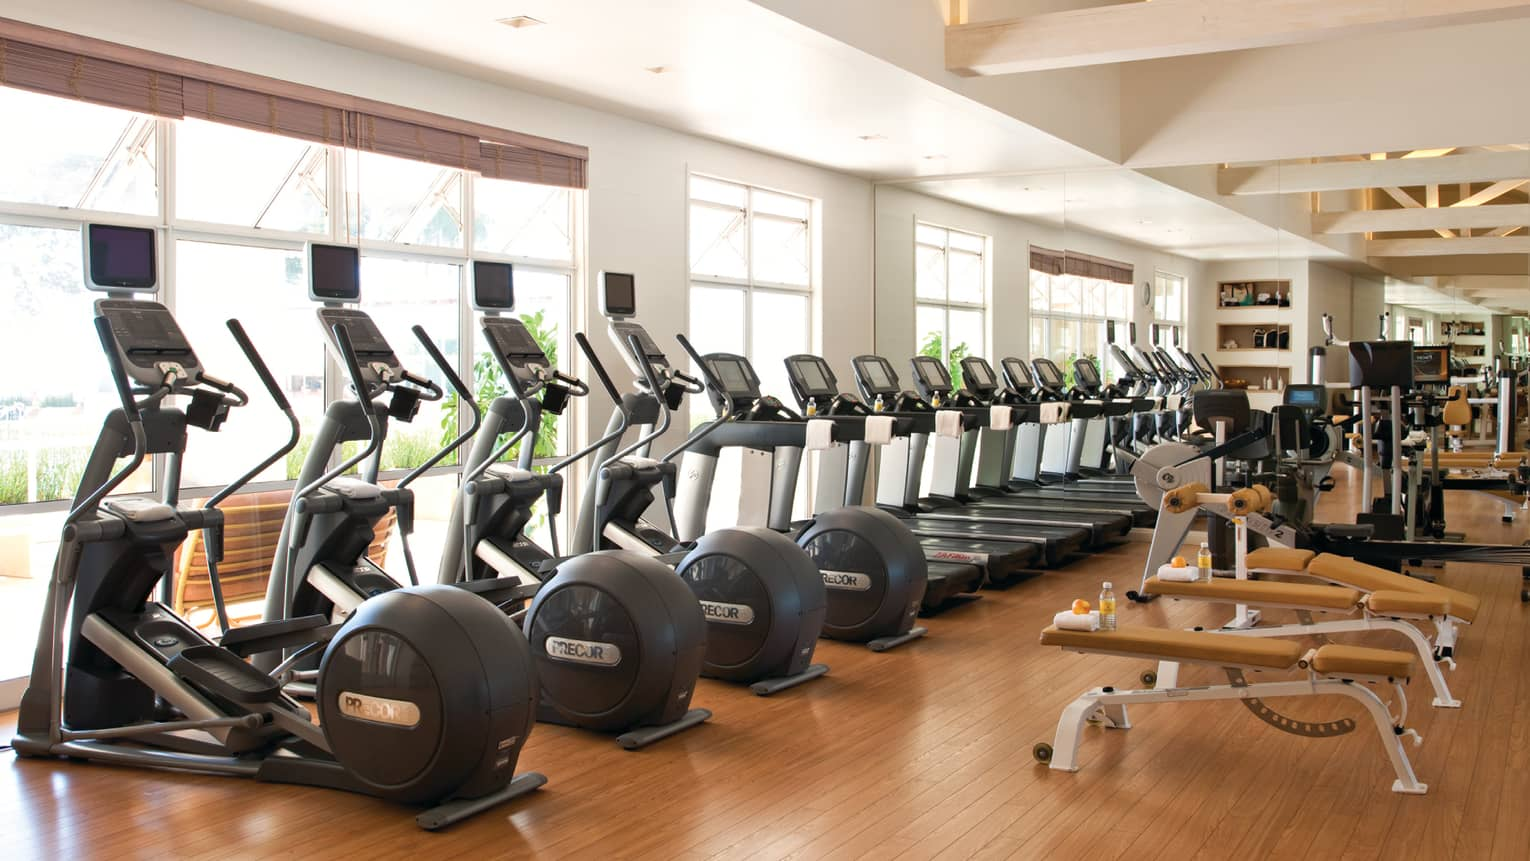 Row of elliptical cardio machines, treadmills by sunny windows in Fitness Centre